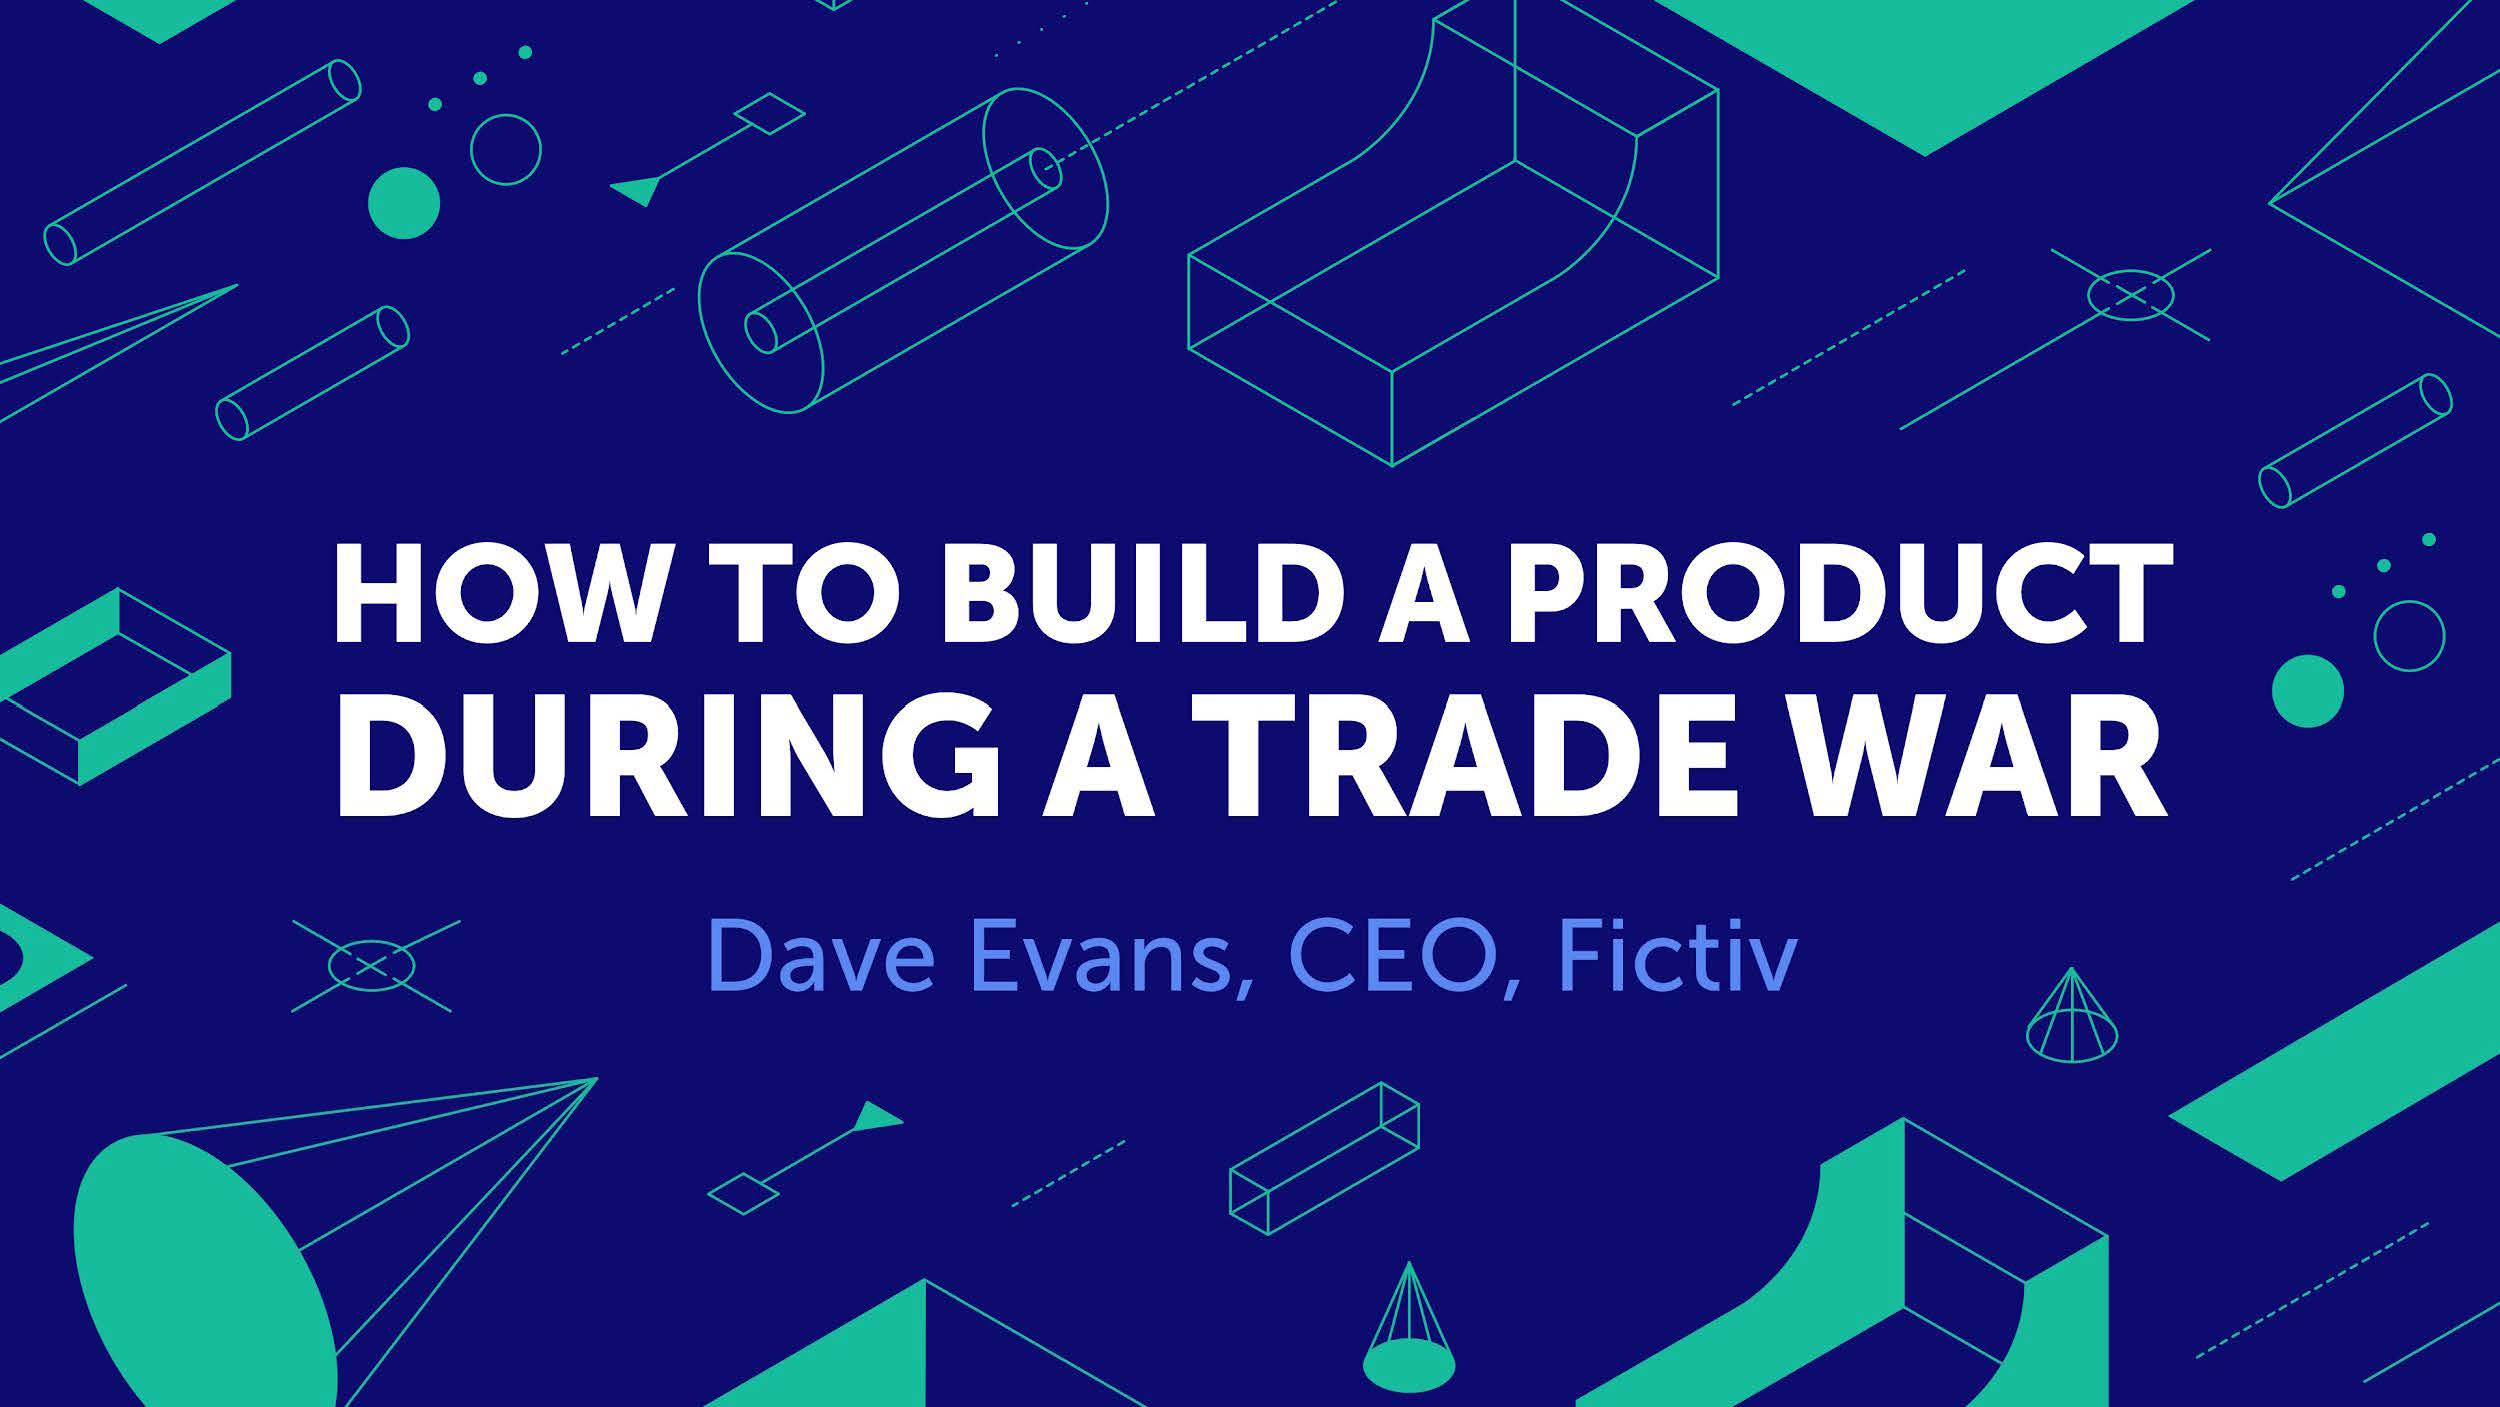 SXSW_Dave-Evans_How-to-build-a-product-in-a-trade-war_Page_01.jpg